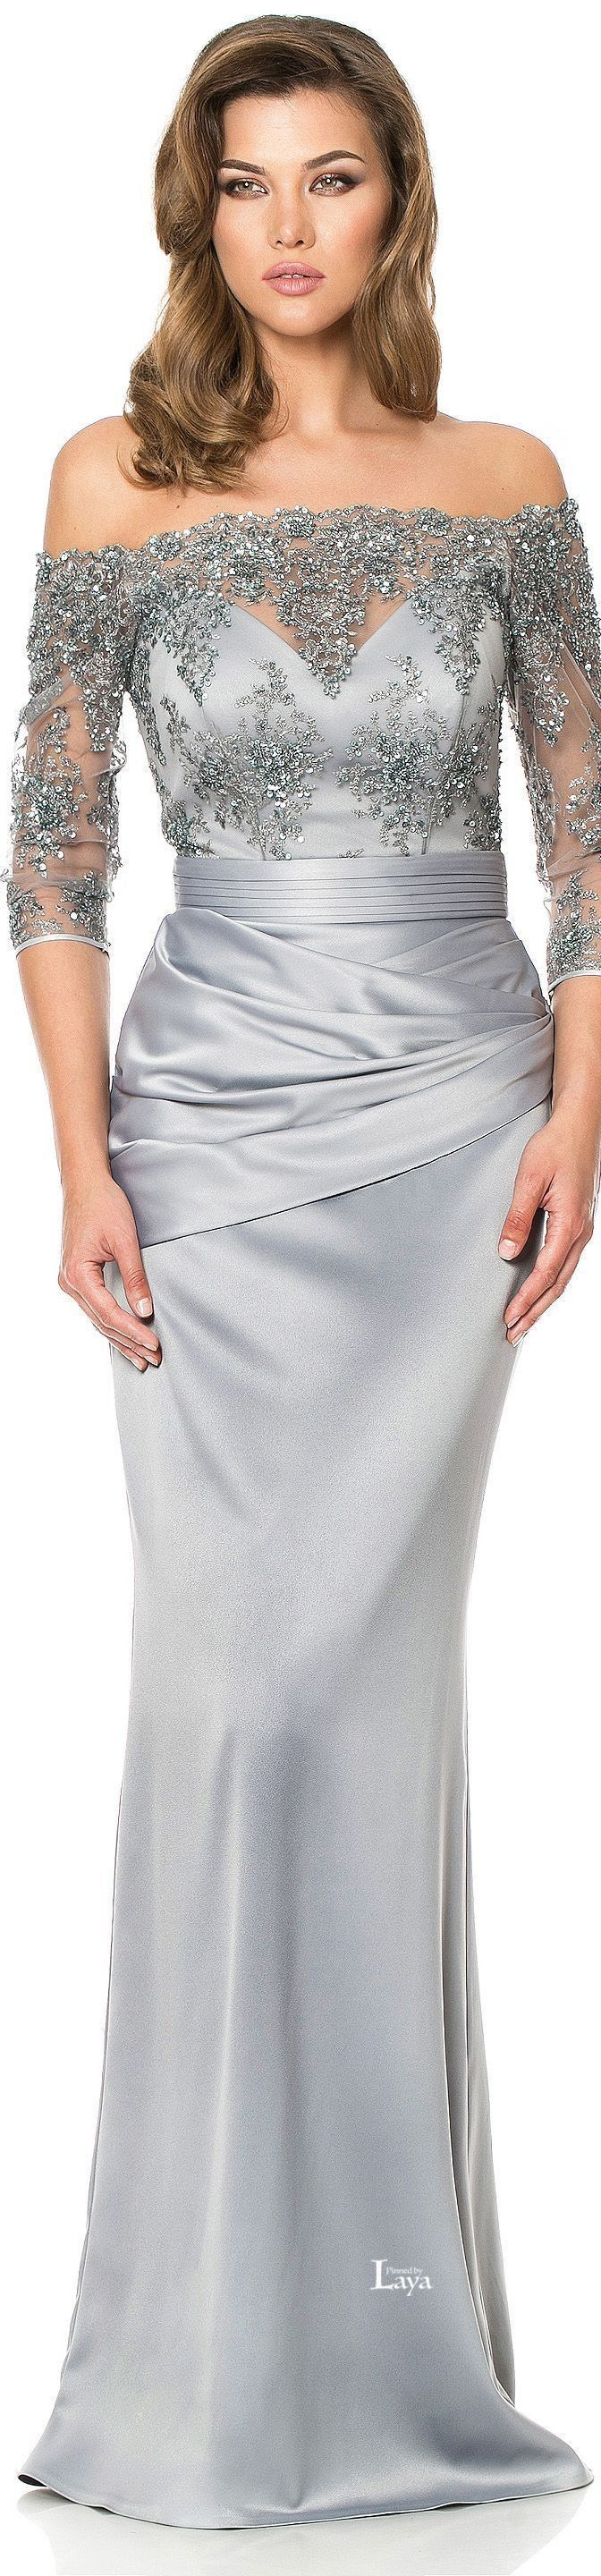 Gorgeous Mother of the bride dresses for the wedding of your child, or mother of the groom dress! #groomdress